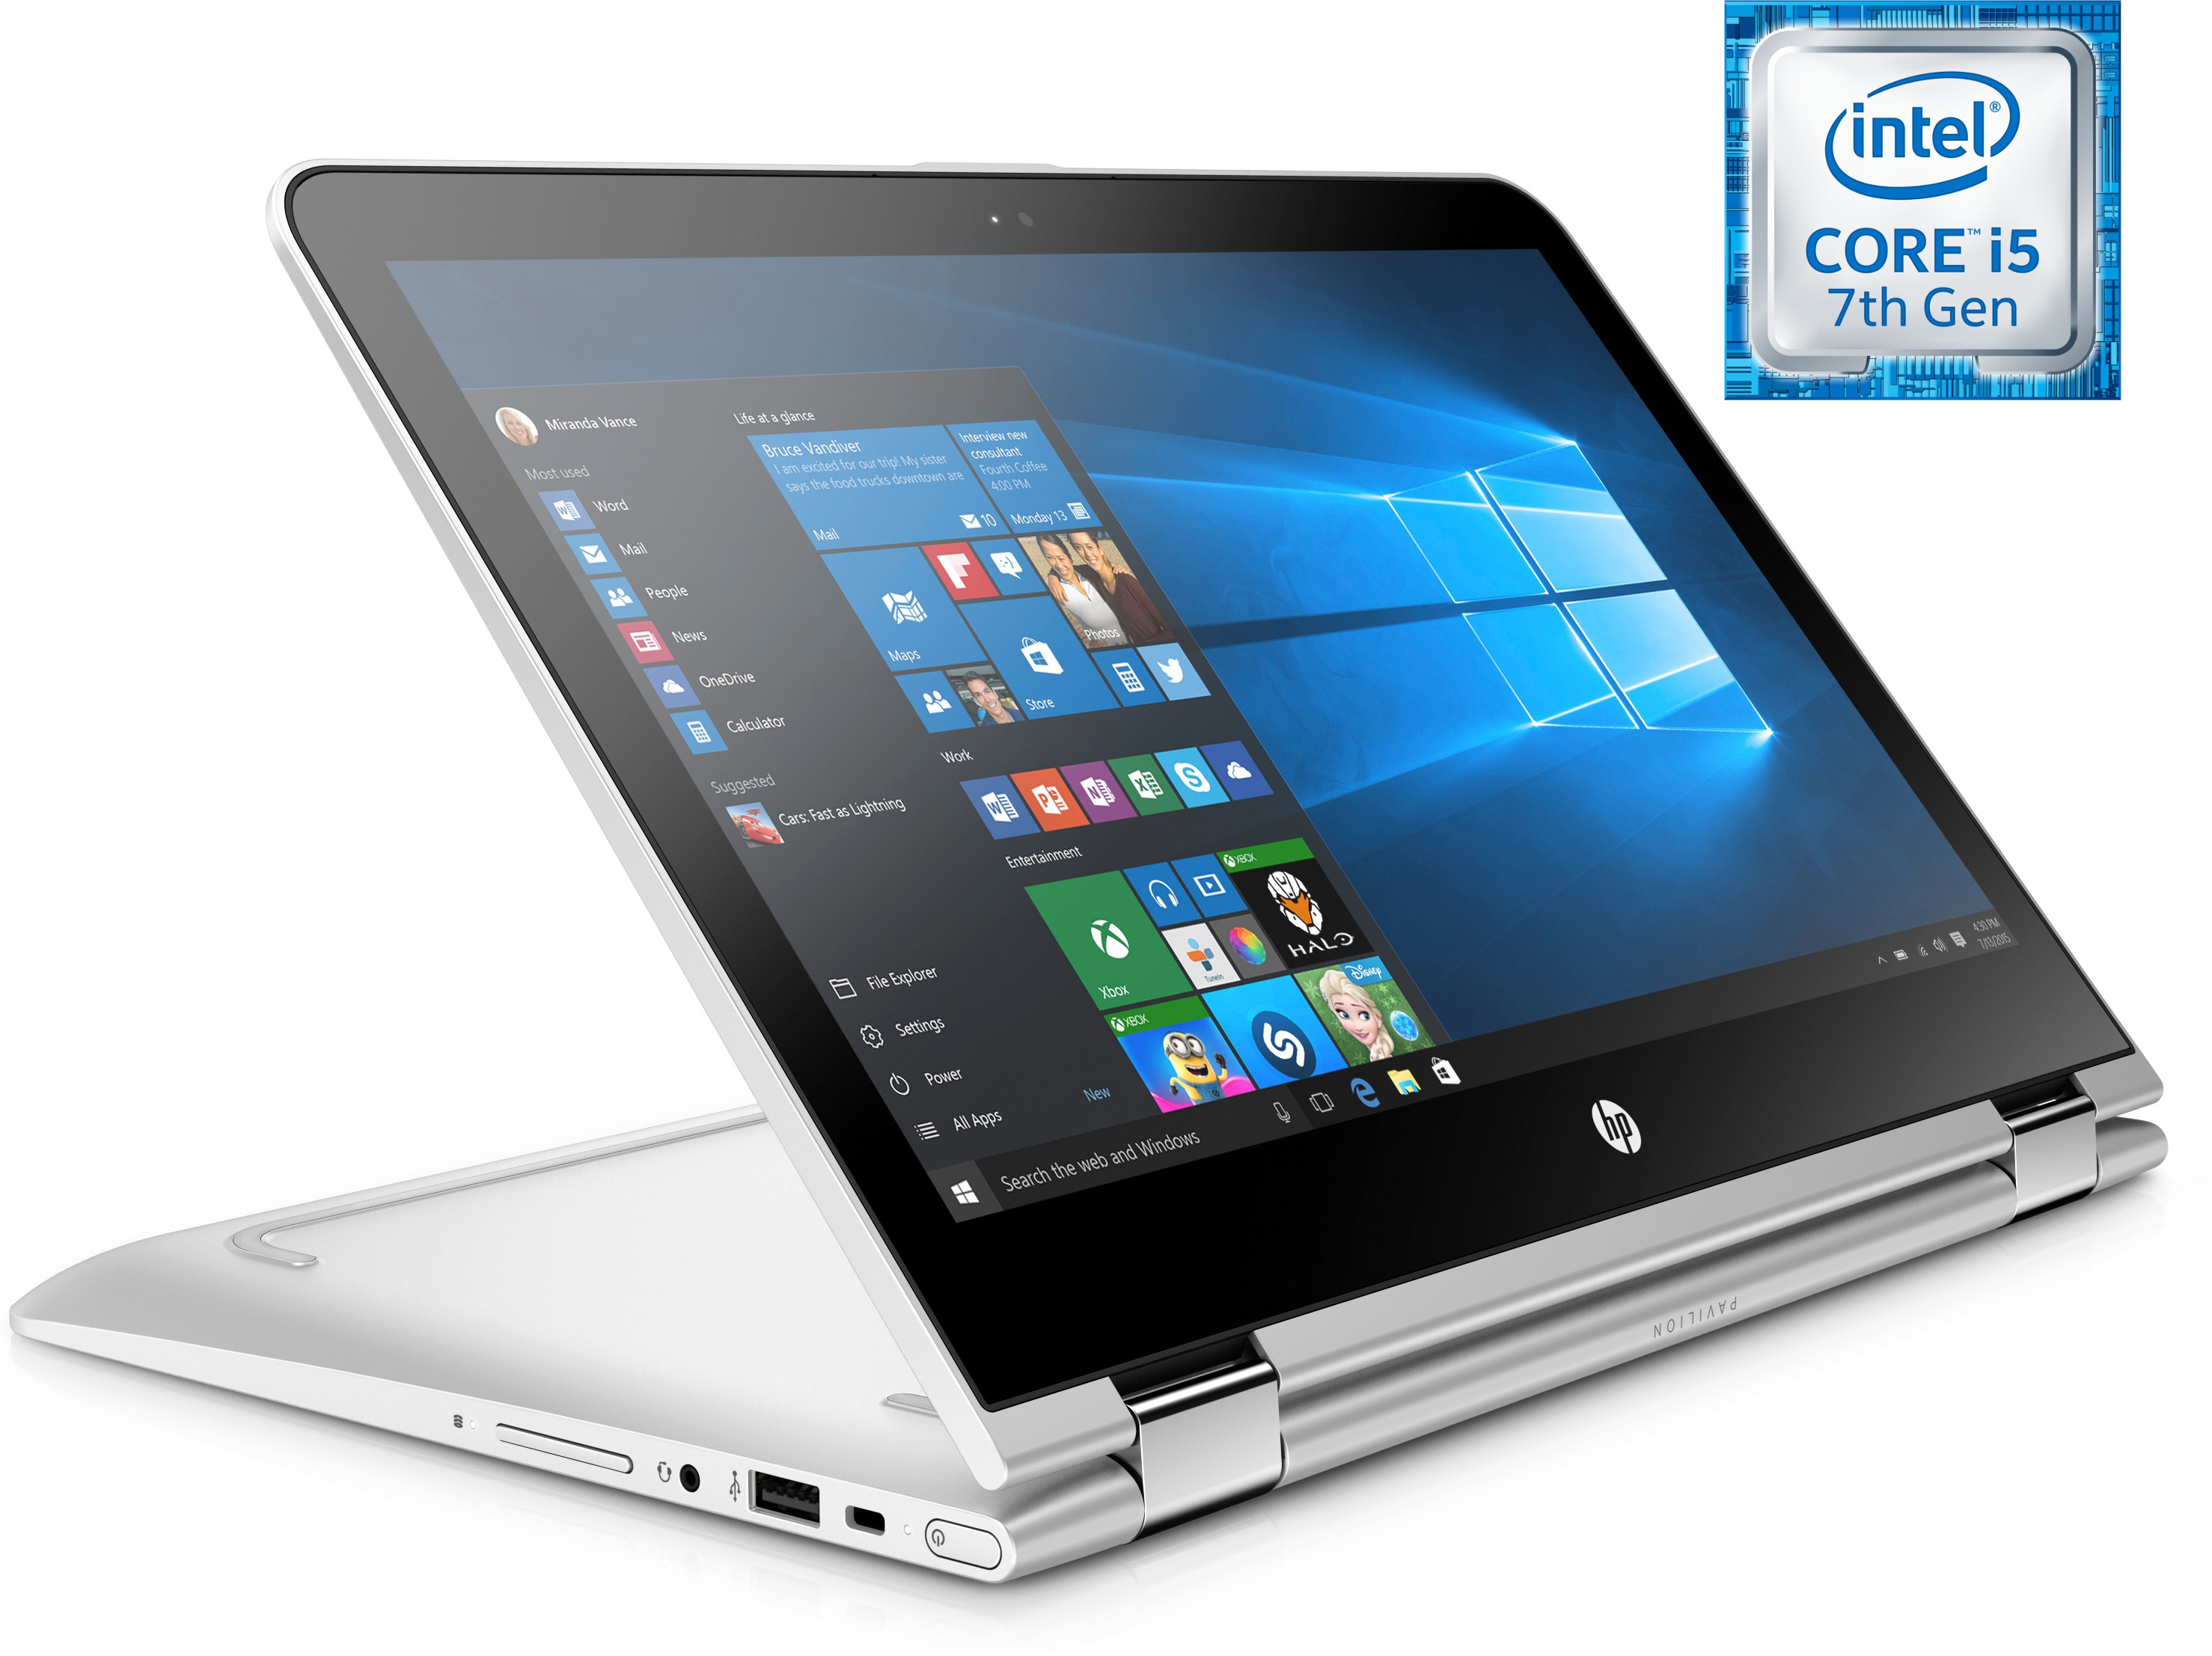 Deals - Jodhpur - Premium Laptops <br> Minimum Rs. 10000 off on Exchange<br> Category - computers<br> Business - Flipkart.com